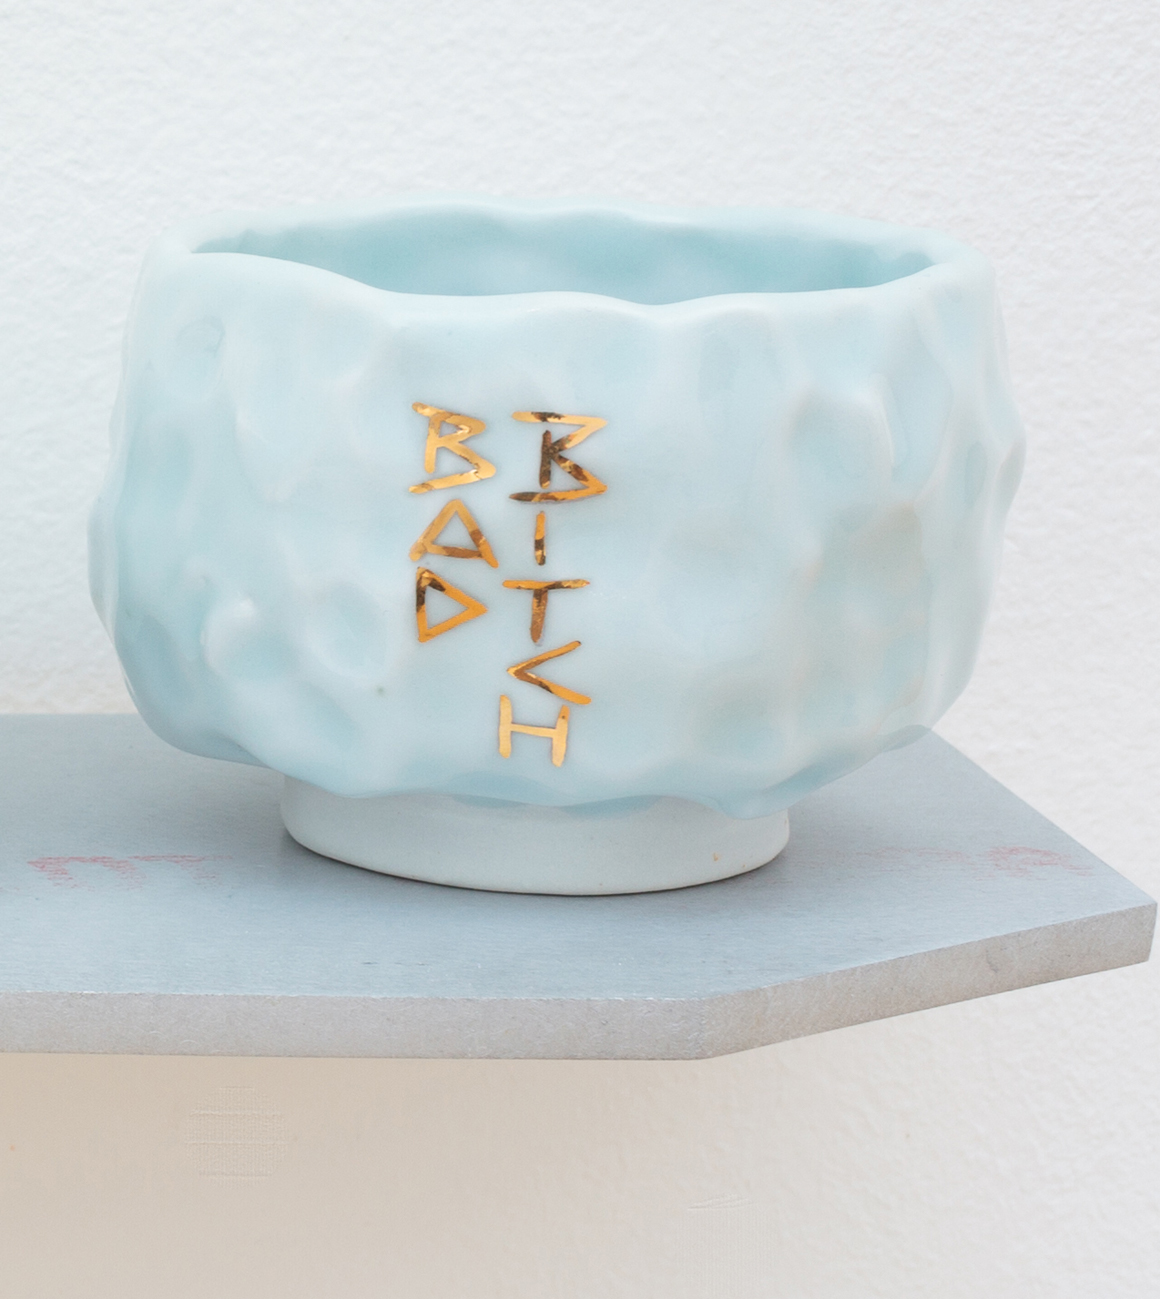 <p><em>Bad Bitch Cup (1)</em><span class='media'>Glazed porcelain, gold luster, aluminum, Sculpey clay</span>2.5 x 3 x 3in<br>2016<br><a class='inquire' href='mailto:info@gildargallery.com?subject=Artwork Inquiry PWAS0002&body=I am interested in finding out more about Bad Bitch Cup (1) by Patrice Renee Washington'>Inquire</a></p>